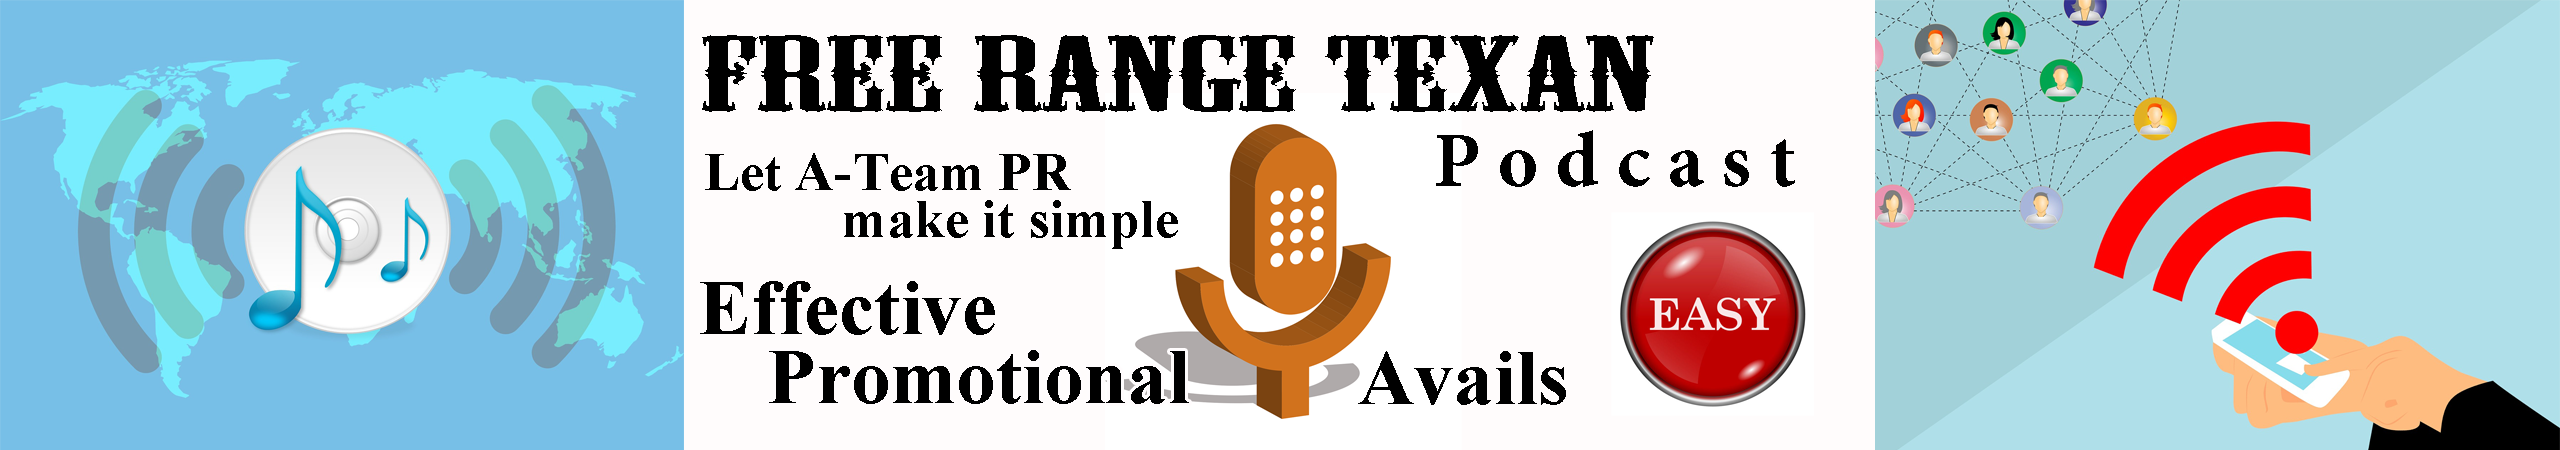 Advertise on Free Range Texan podcast